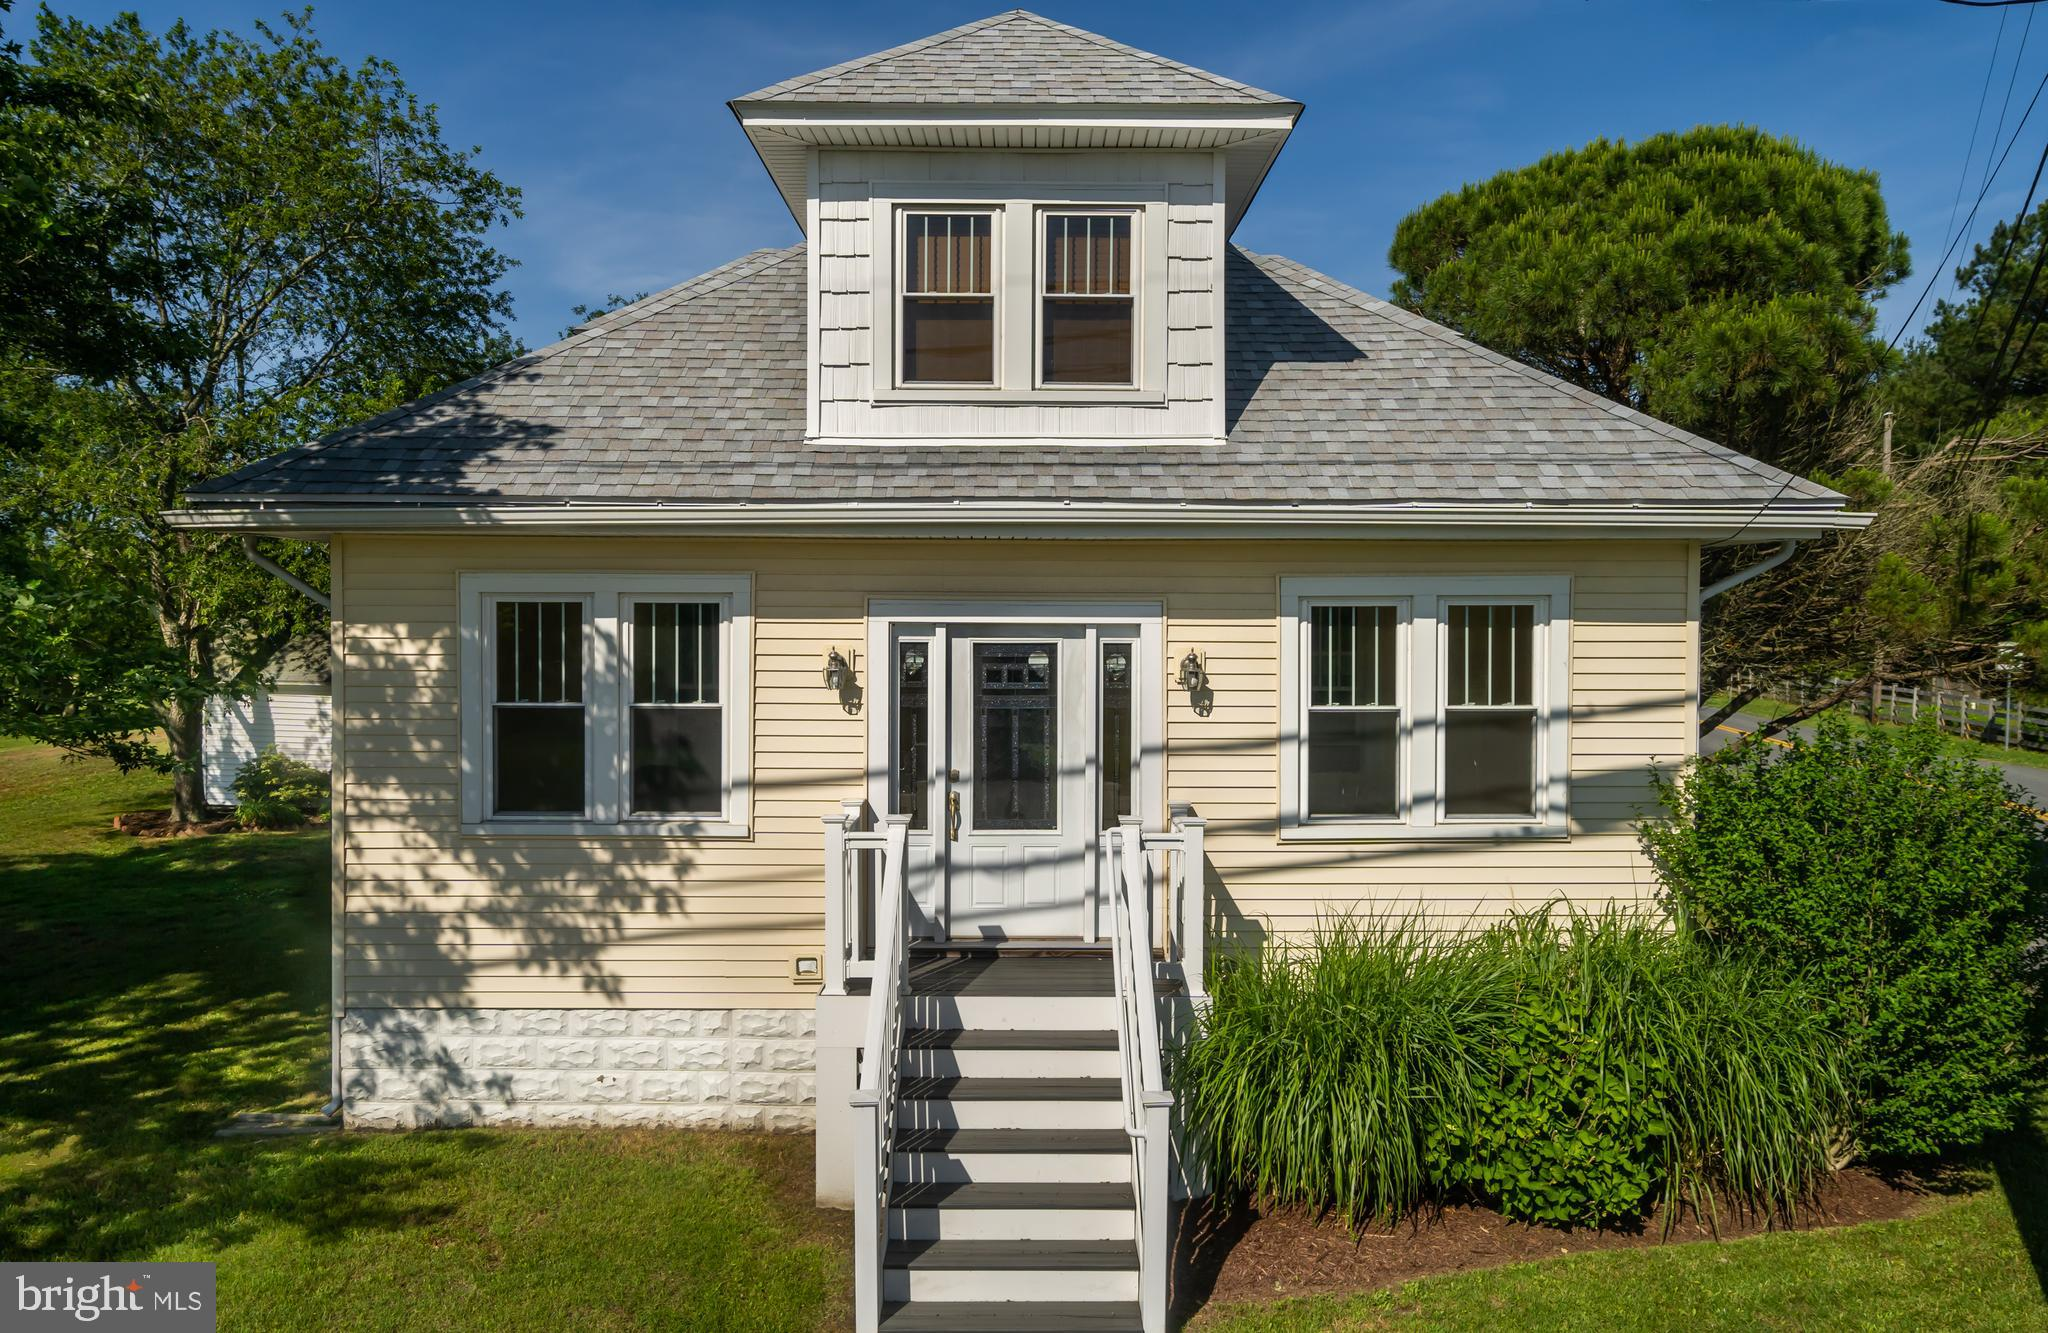 This beautifully upgraded classic, charming timeless home is truly a special piece of real estate si